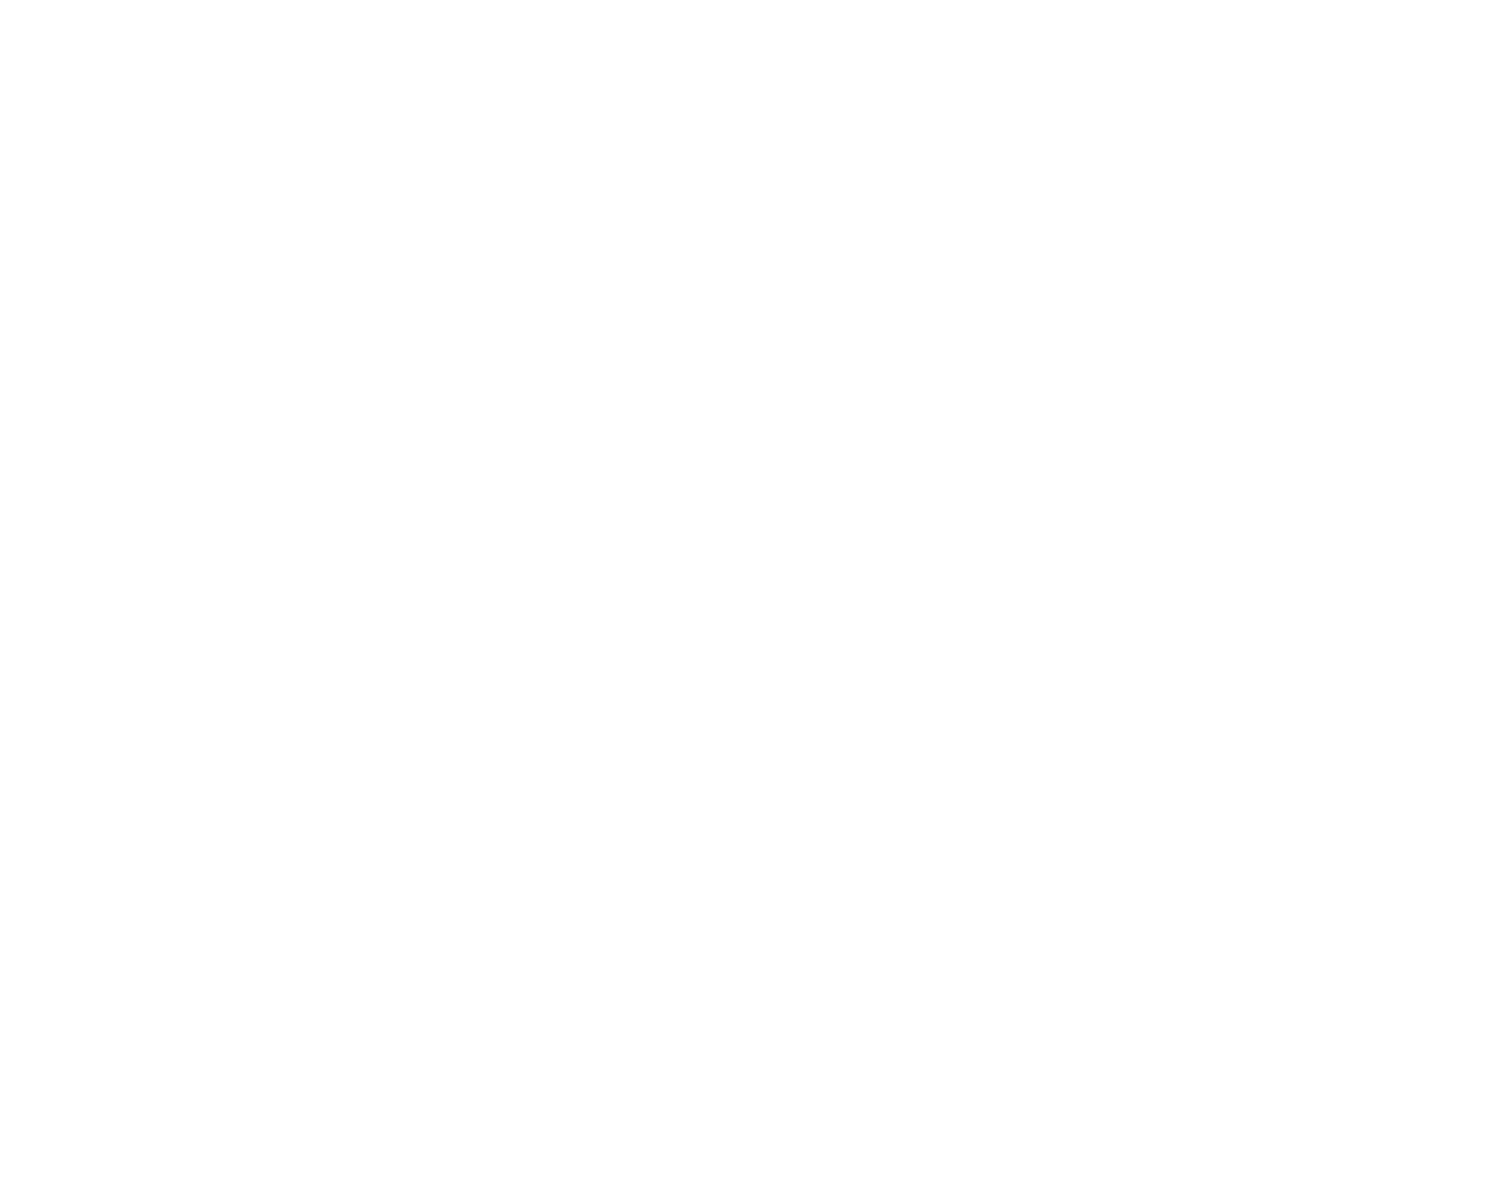 Man in Your Head